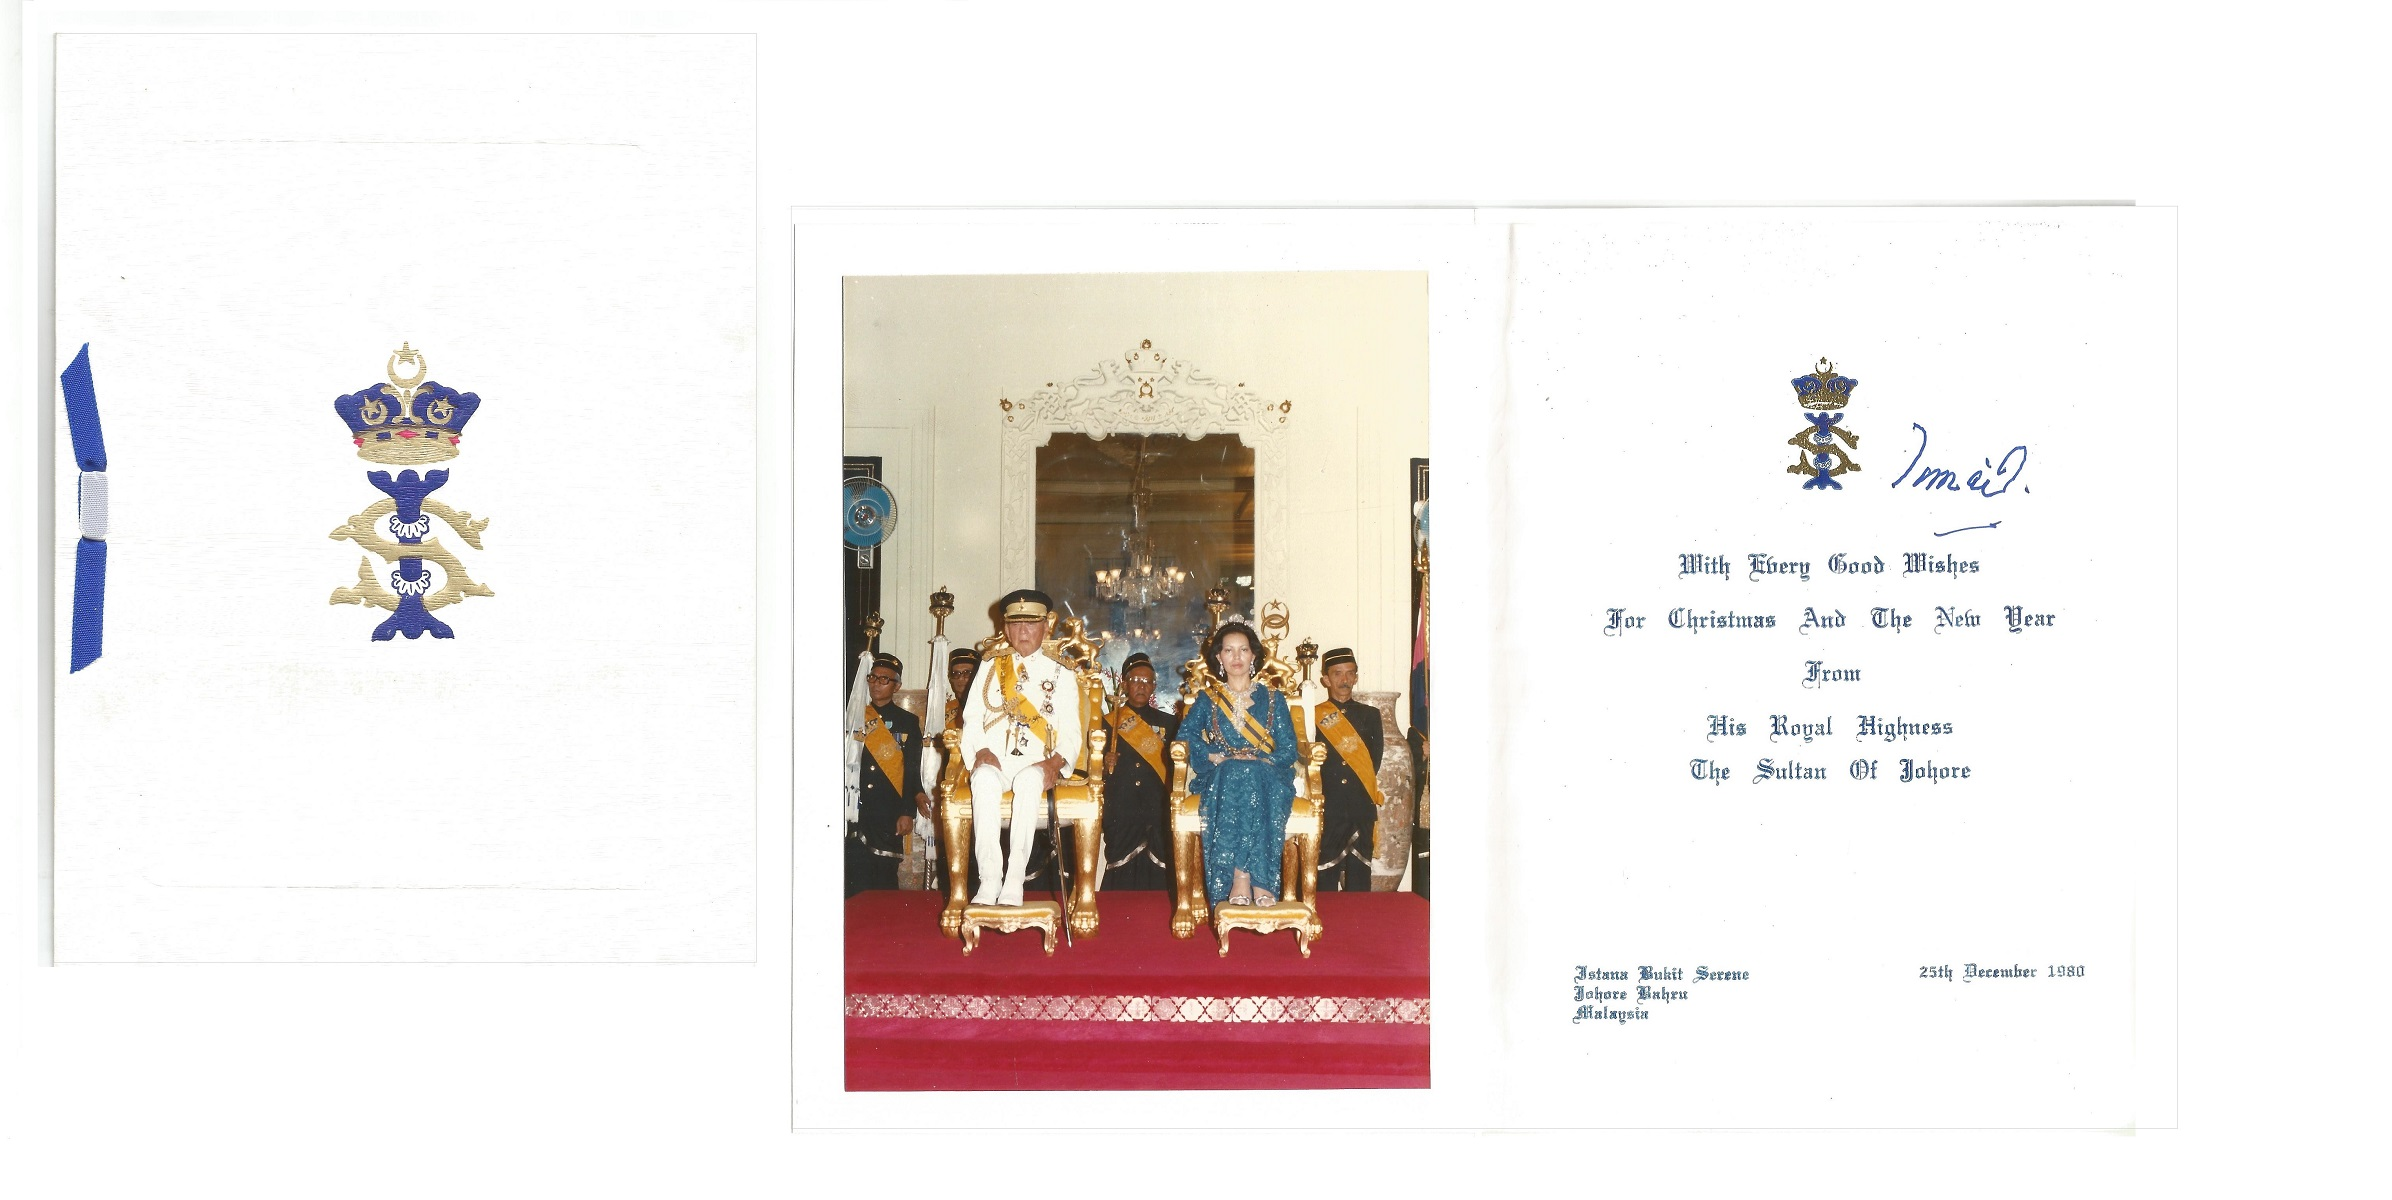 Sultan of Johore 1980 signed Christmas card. Good condition. All autographs come with a